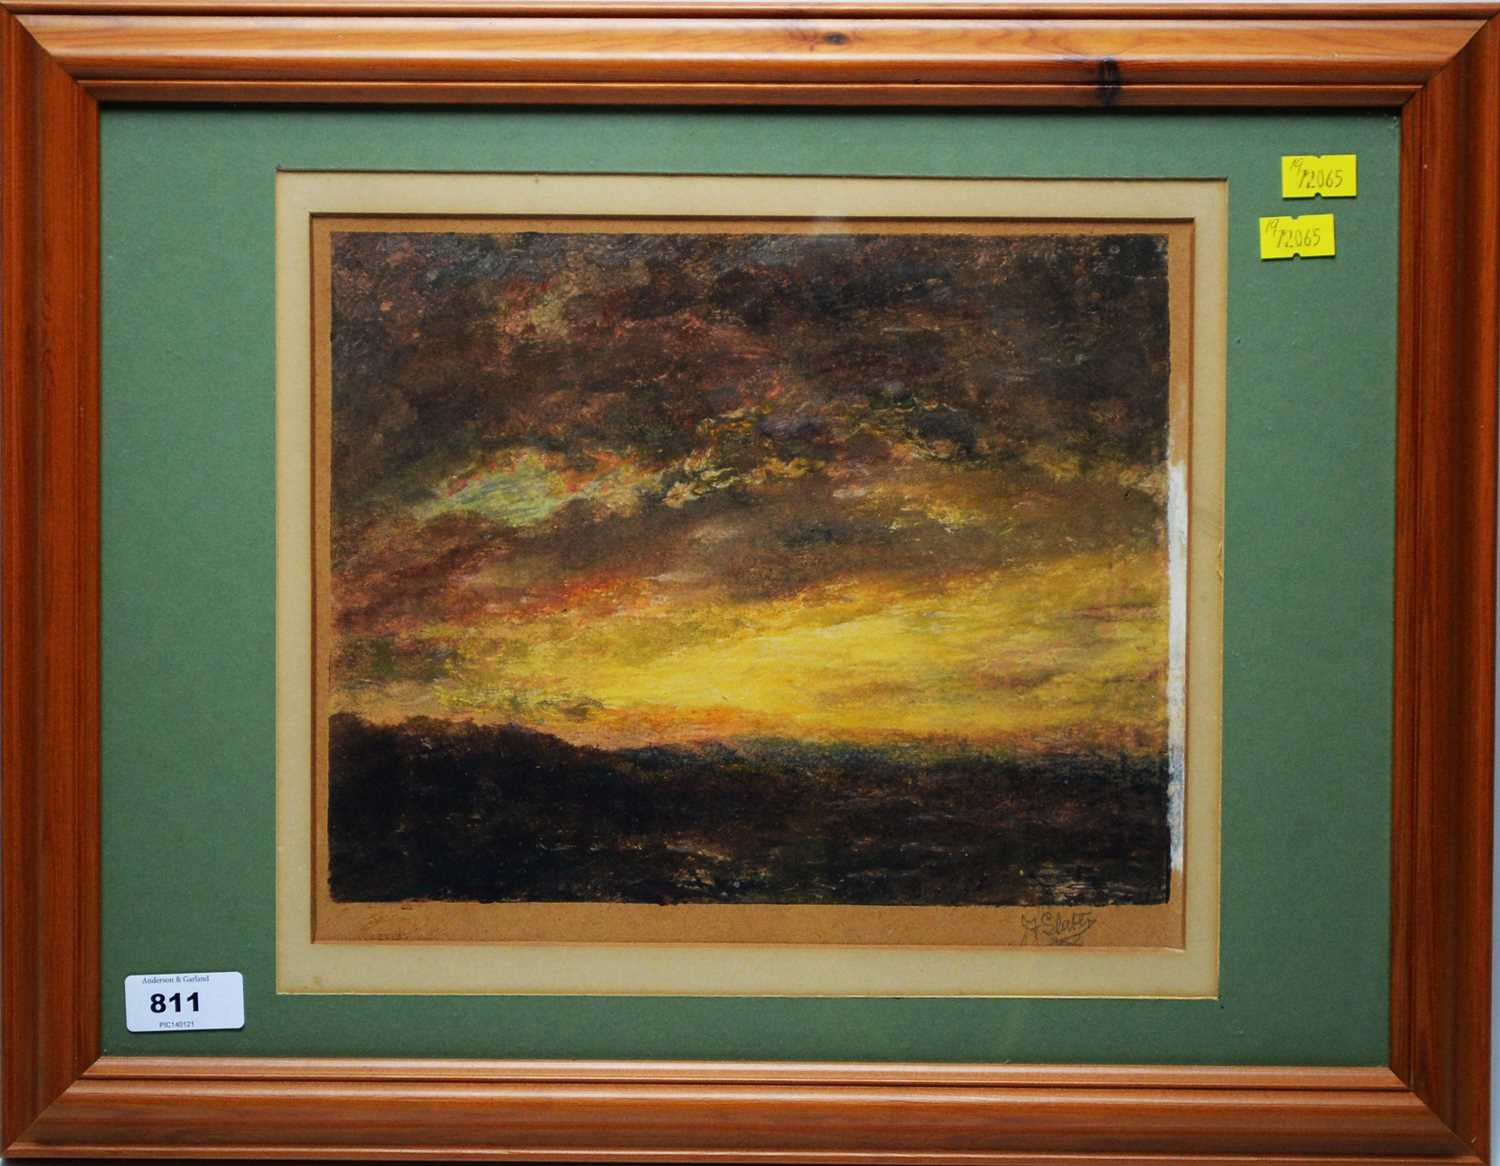 Lot 811 - John Falconar Slater - watercolour.